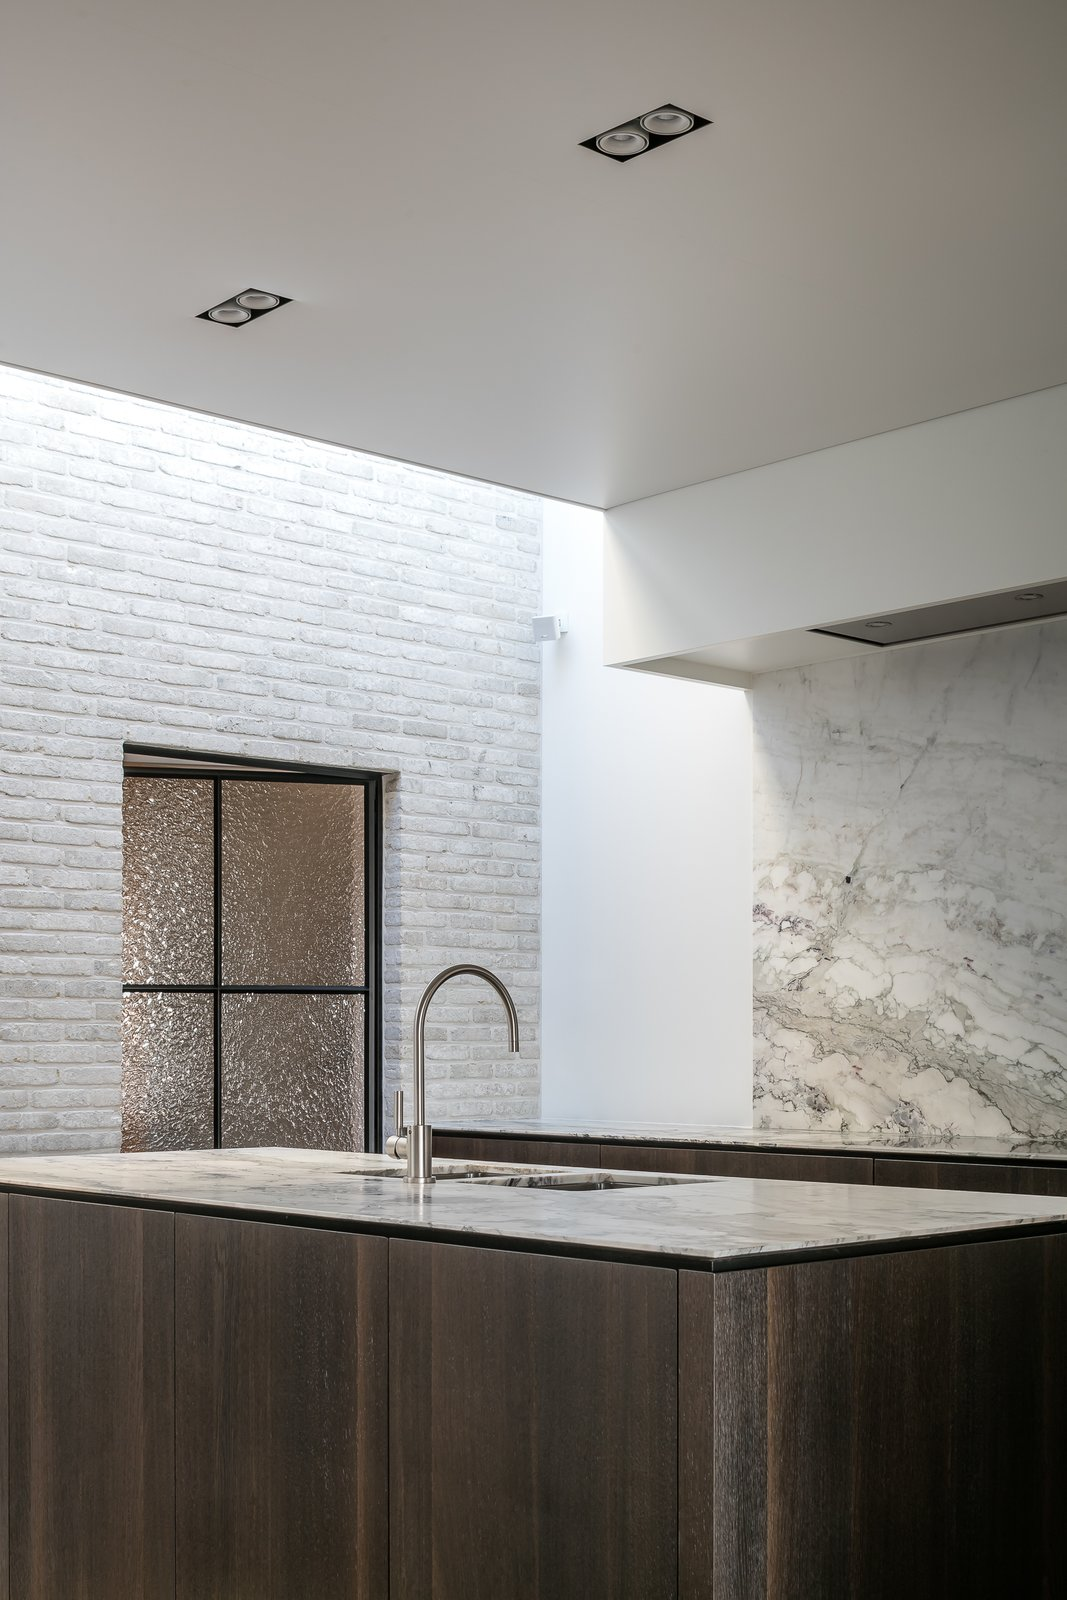 Tagged: Kitchen, Marble Counter, Marble Backsplashe, Ceiling Lighting, Recessed Lighting, and Undermount Sink. Circu House by Leibal